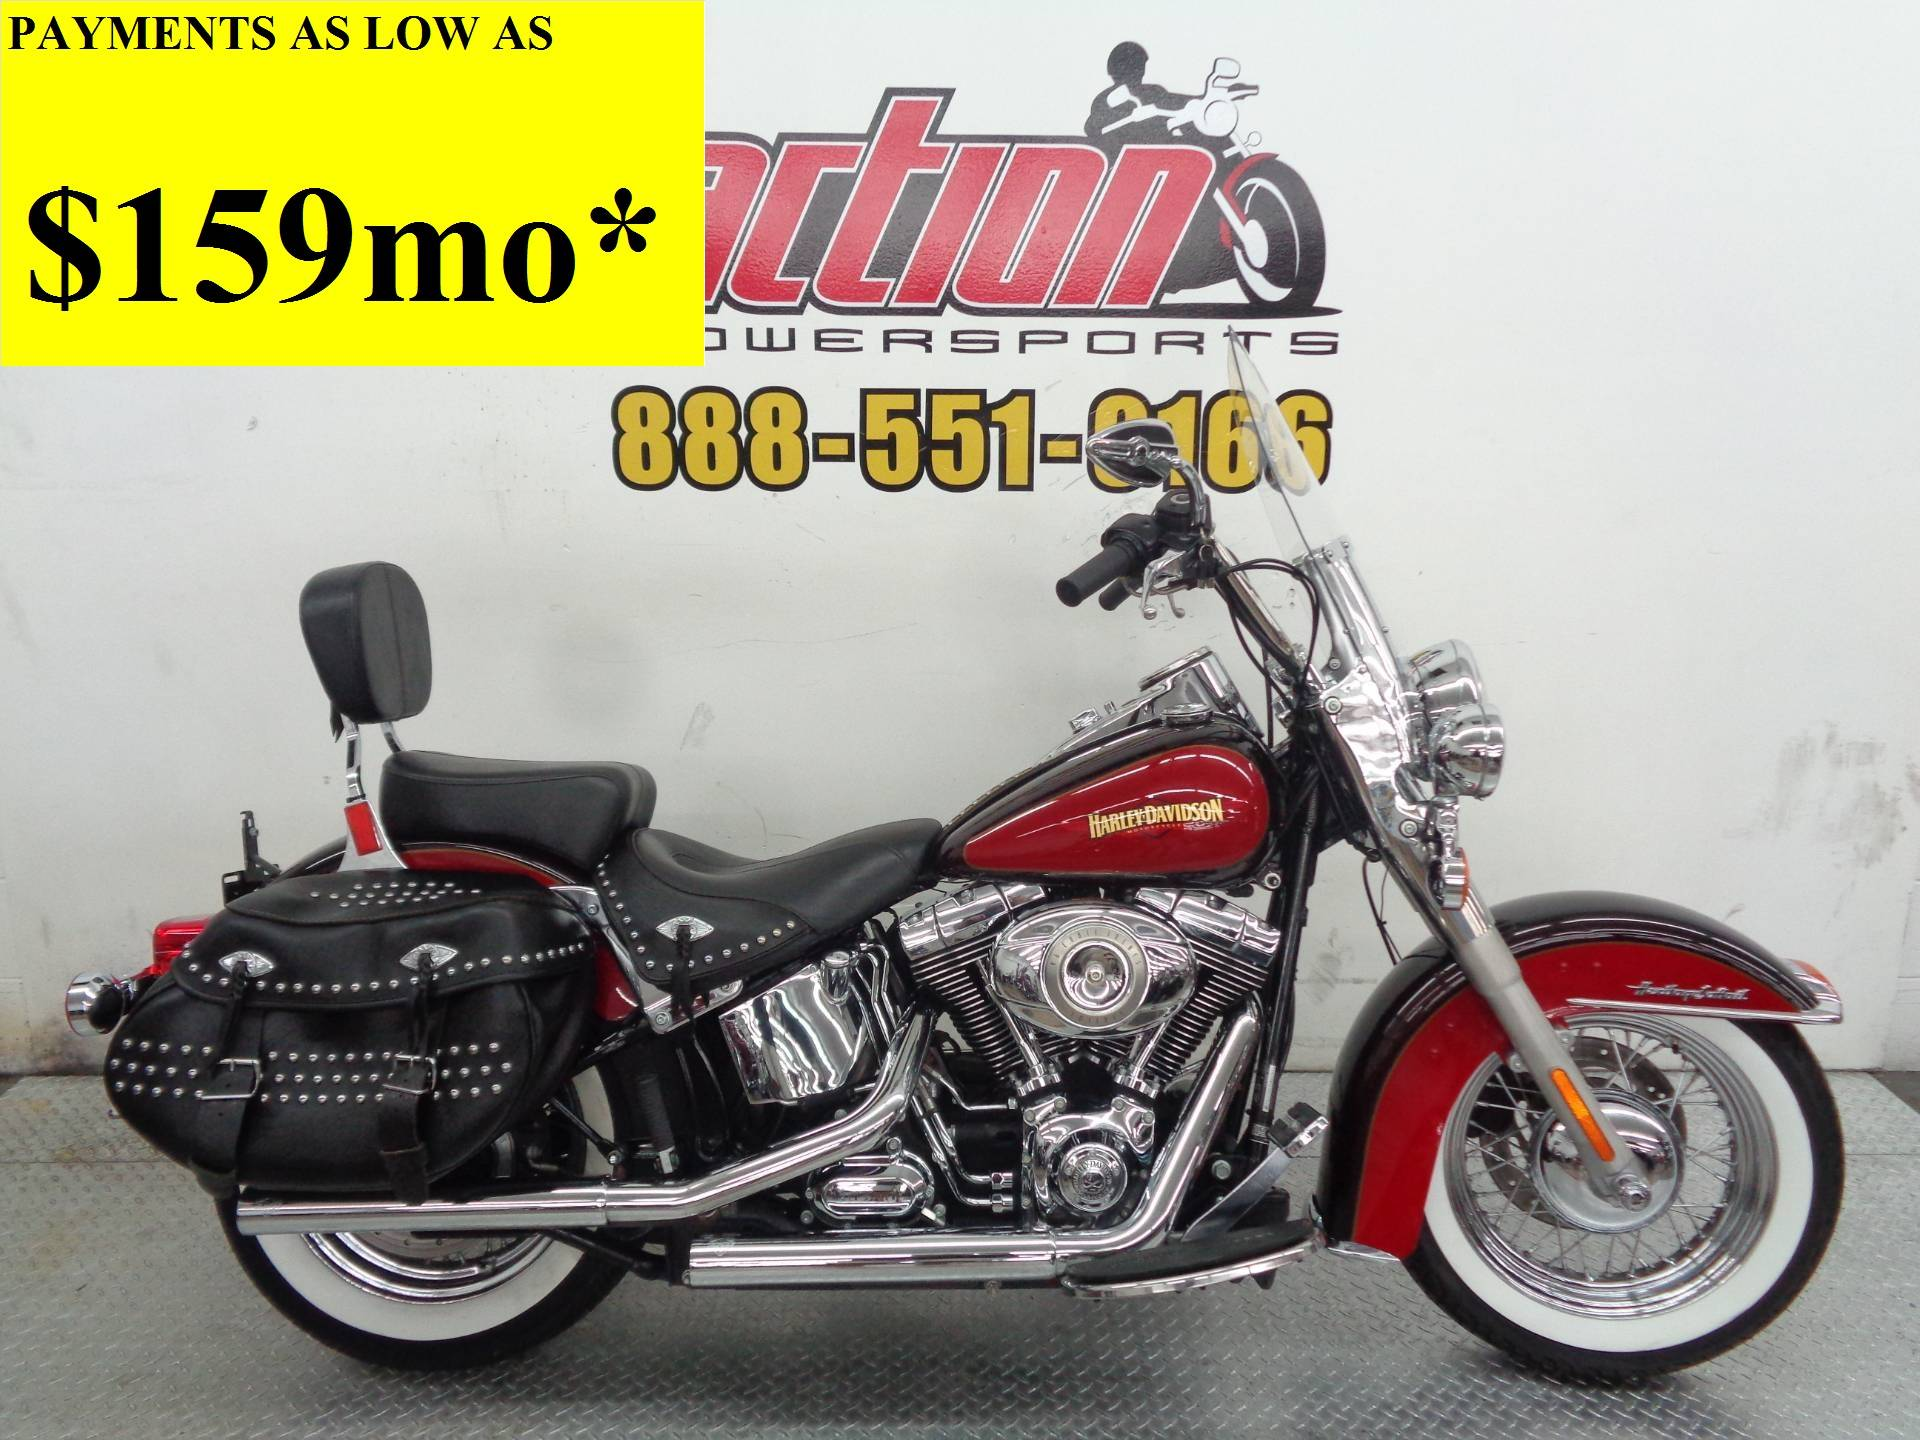 2010 Harley-Davidson Heritage Softail Classic for sale 6523